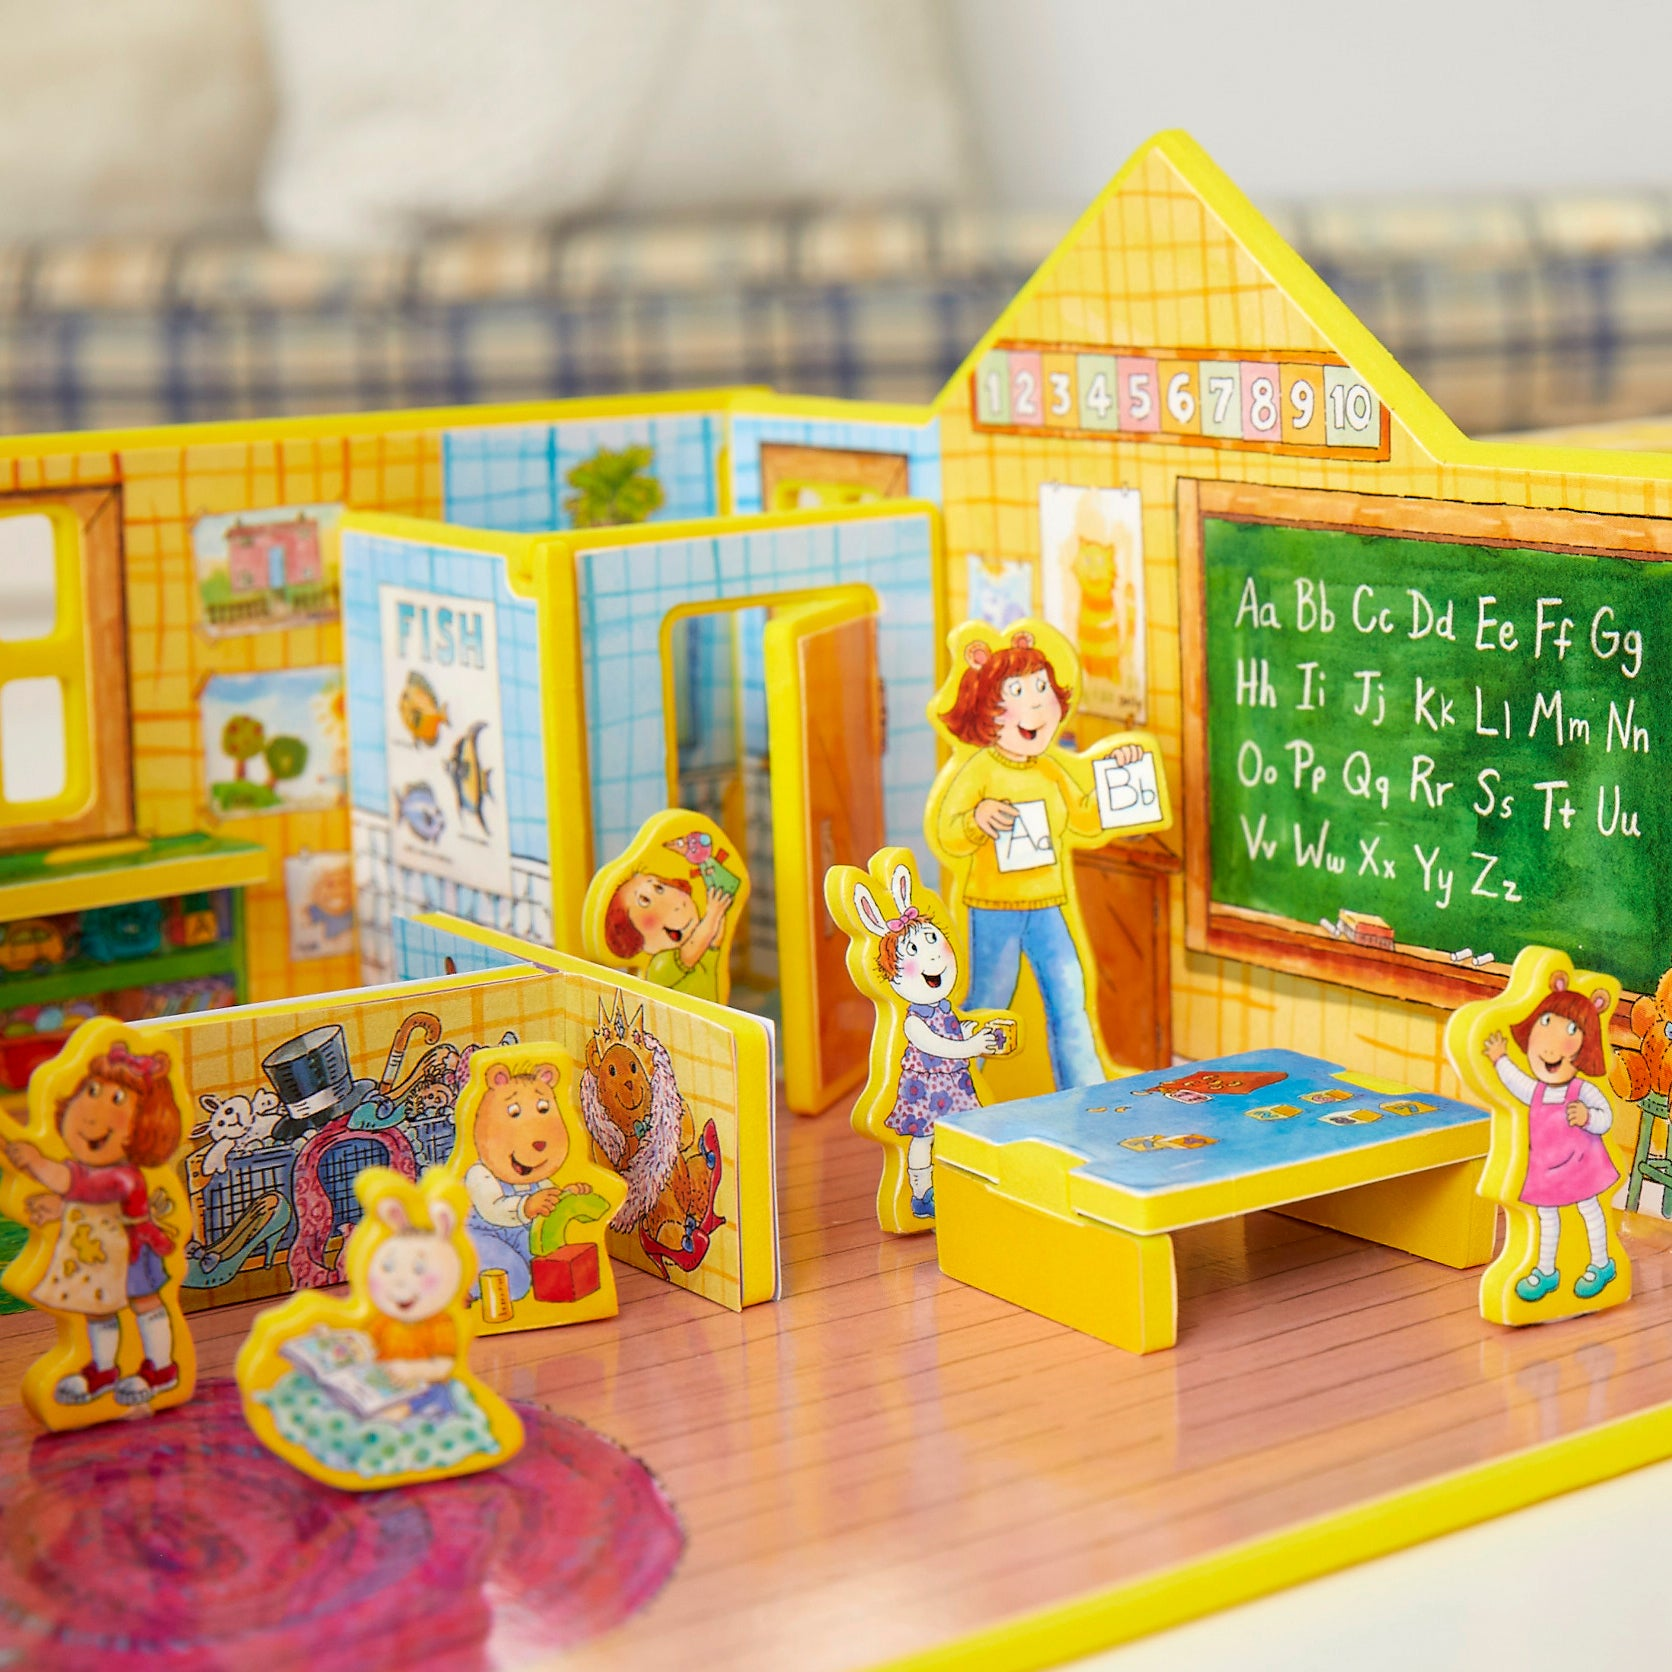 DW's First Day of Preschool Book and Playset